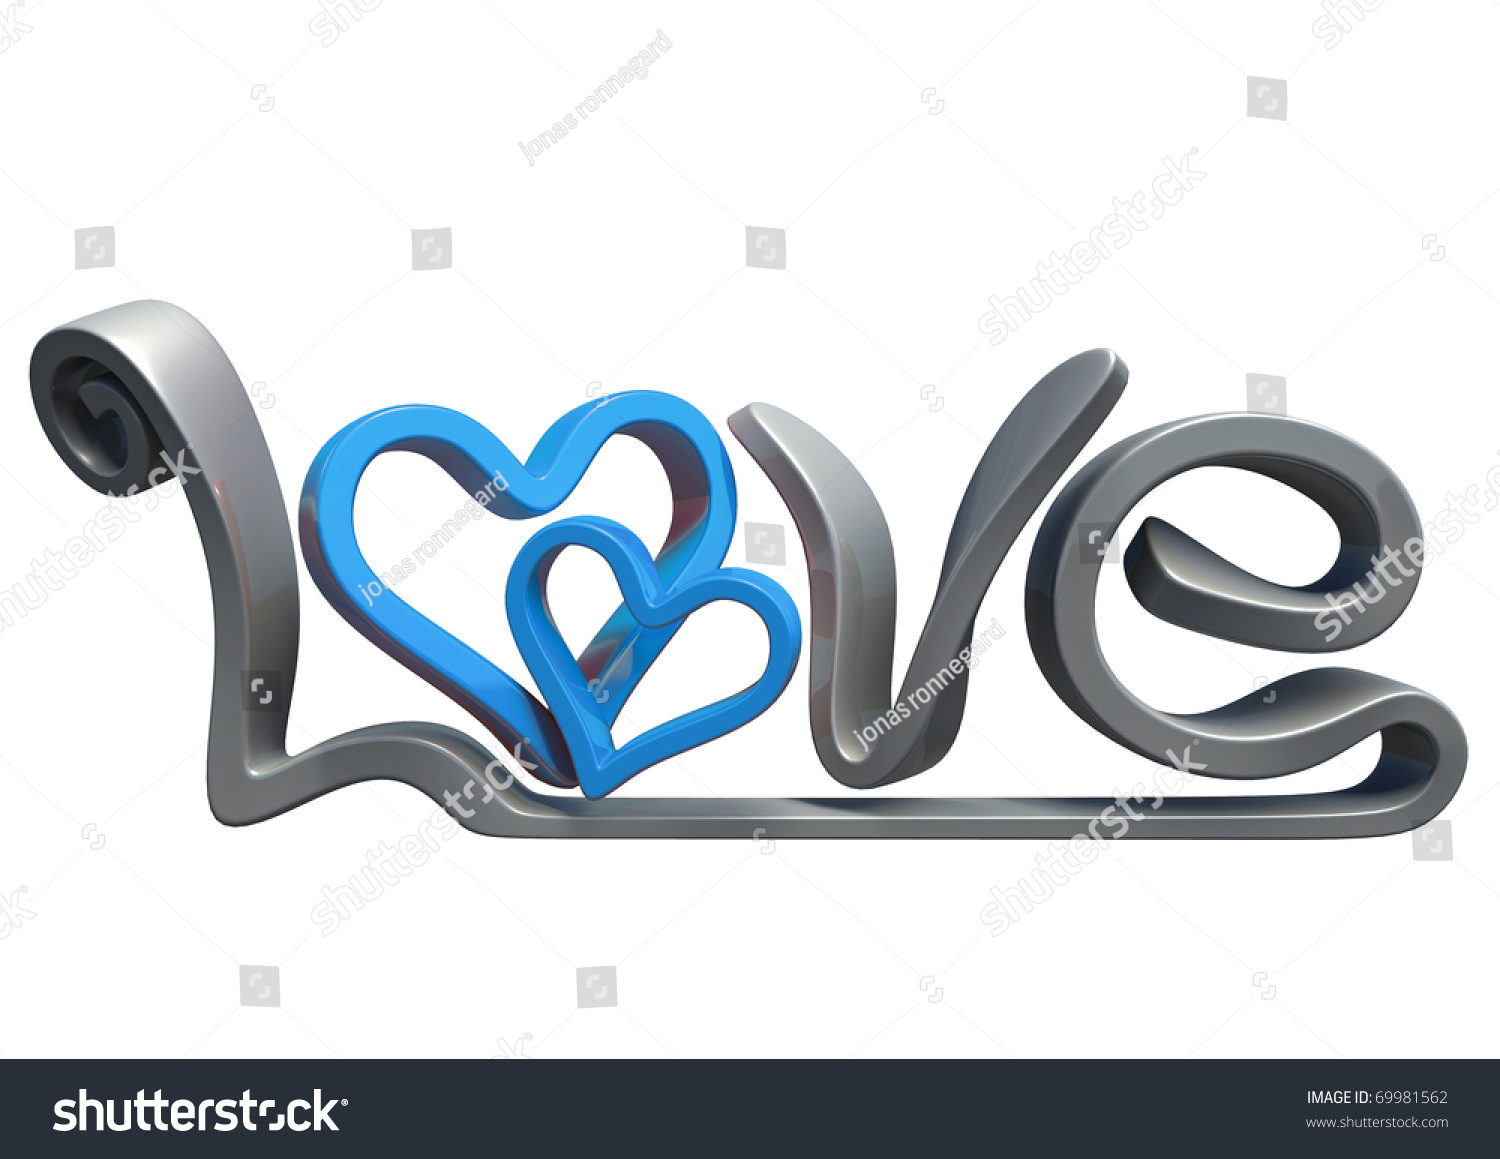 Text that says word love made stock illustration 69981562 text that says the word love made in 3d software isolated on white background biocorpaavc Gallery